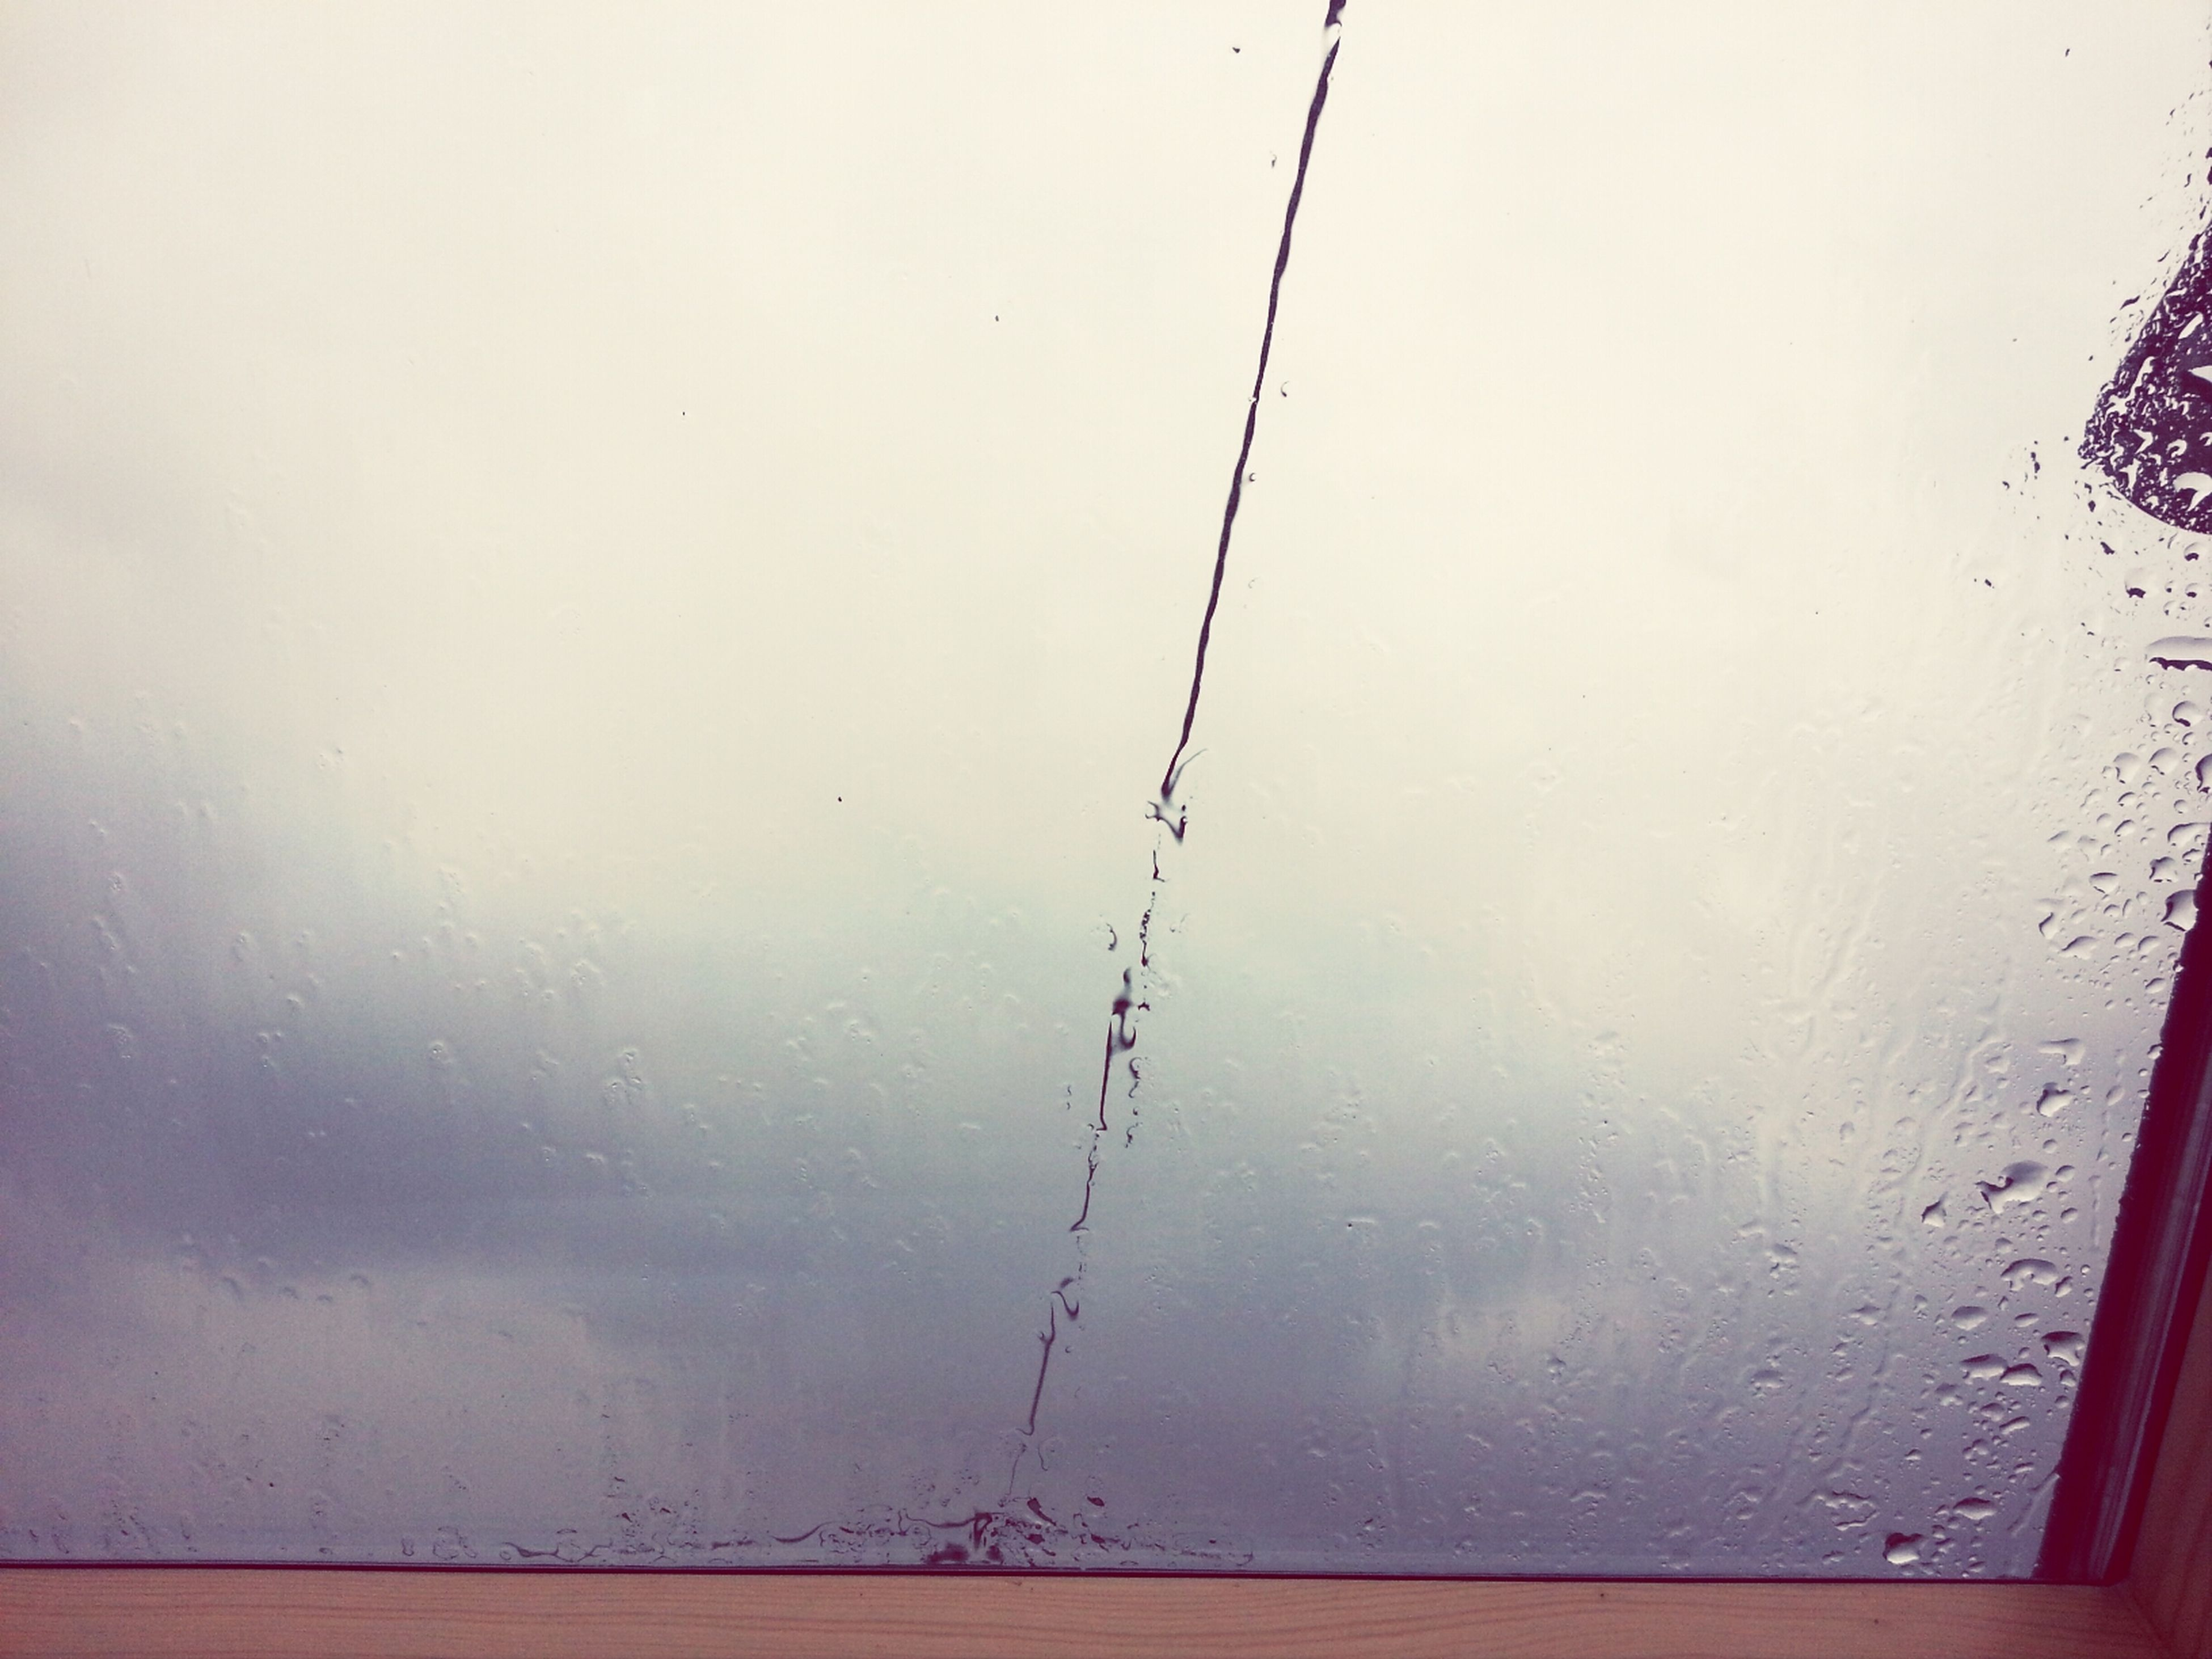 drop, window, water, wet, indoors, transparent, glass - material, rain, weather, season, raindrop, sky, glass, day, close-up, clear sky, nature, no people, looking through window, reflection